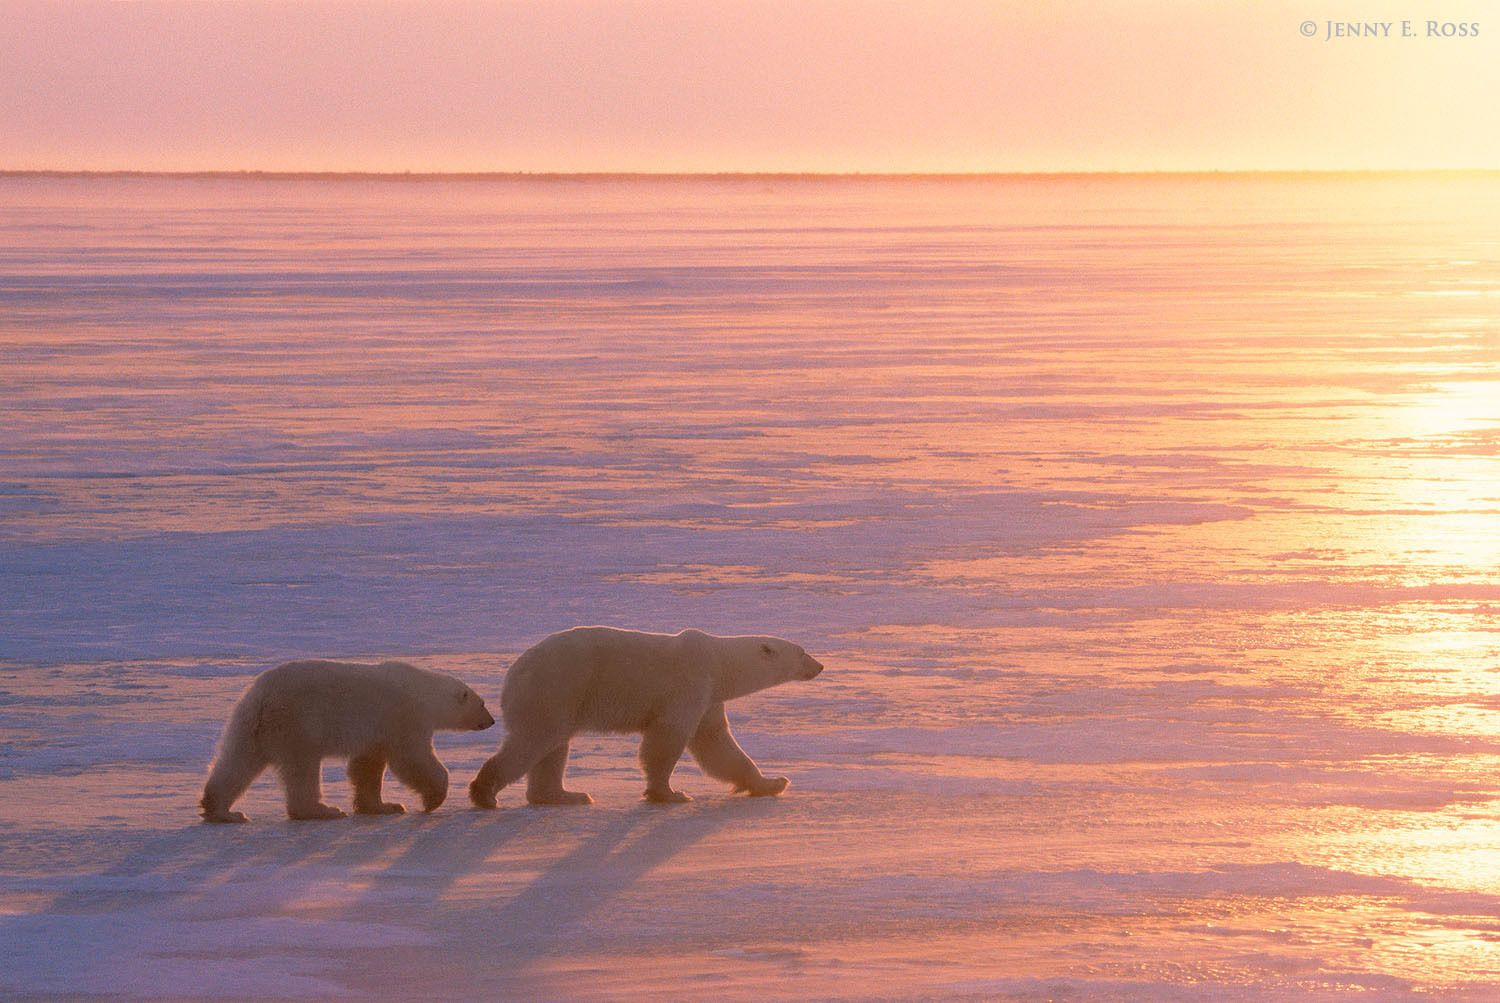 A polar bear mother and her two-year-old cub travel together on the sea ice at sunset.